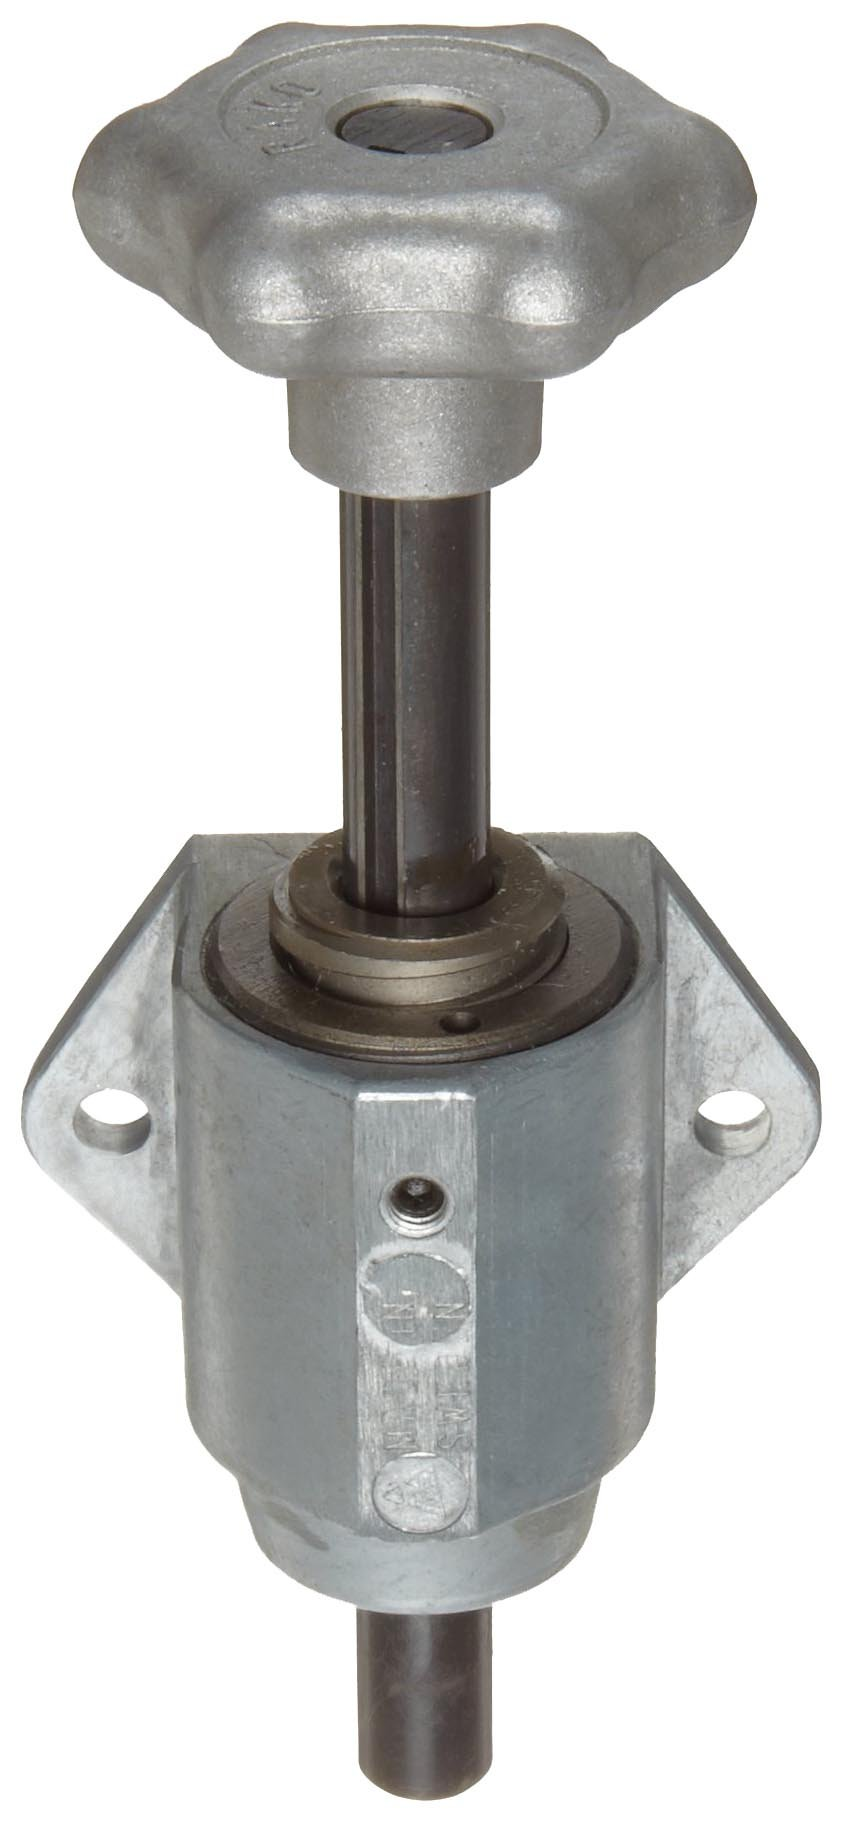 DE-STA-CO FO-122/45 Variable Stroke Straight Line Action Plunger Clamp